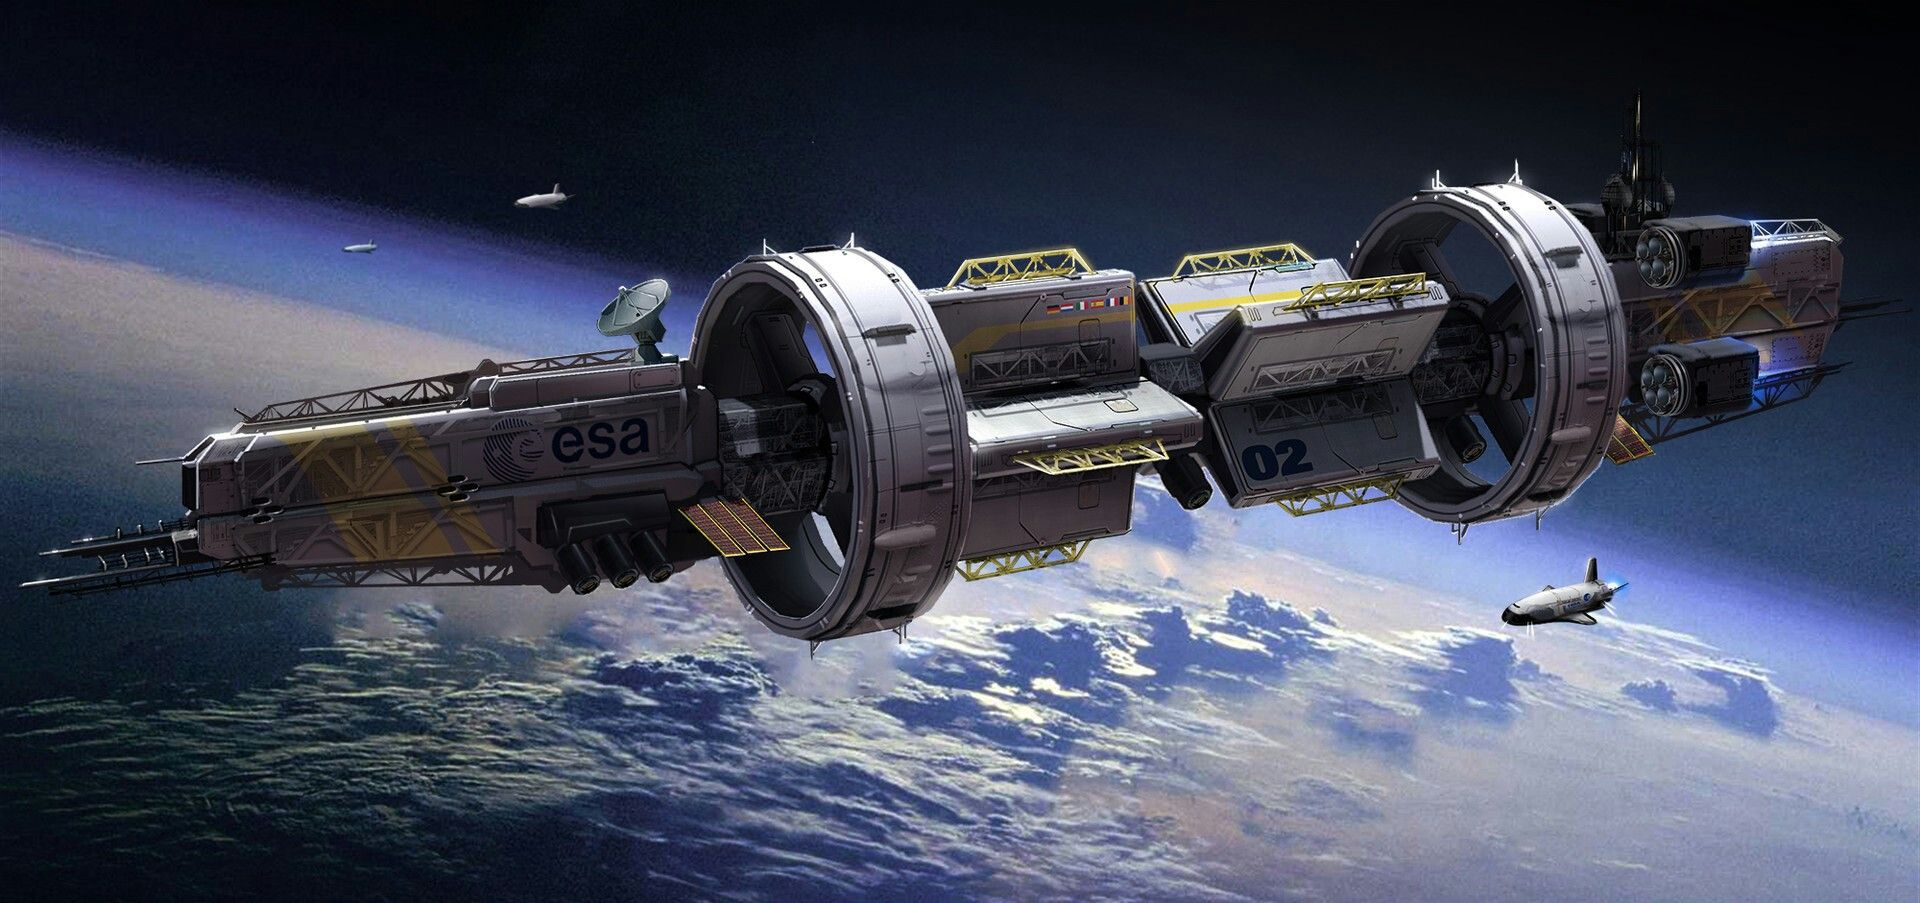 esa space cruiser science fiction illustration